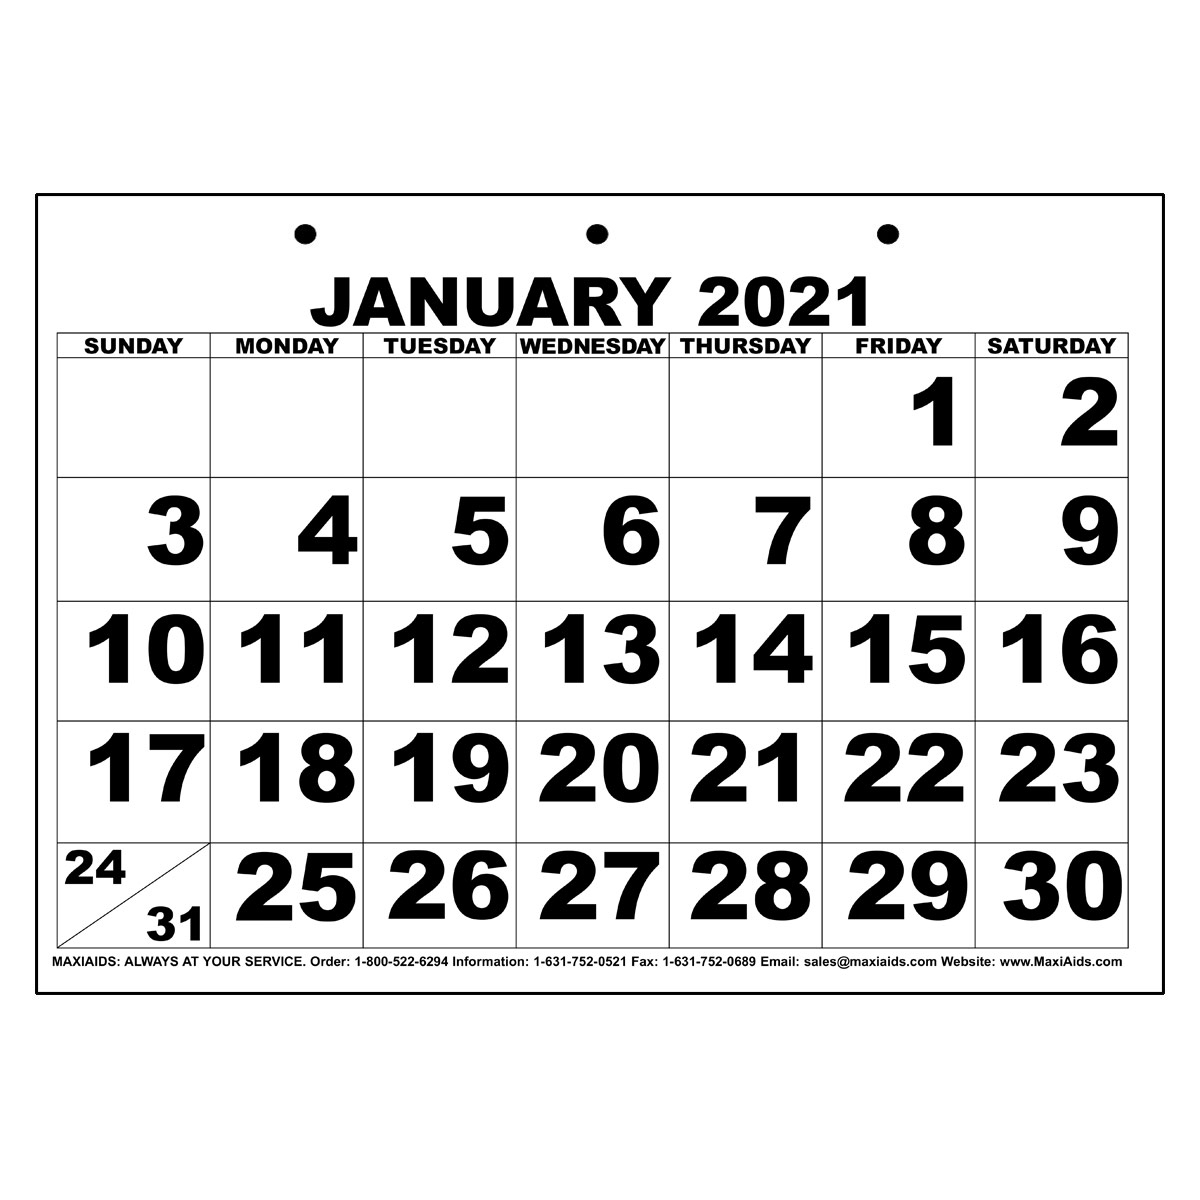 Low Vision Print Calendar - 2021 for Large Bold Printable Calendar